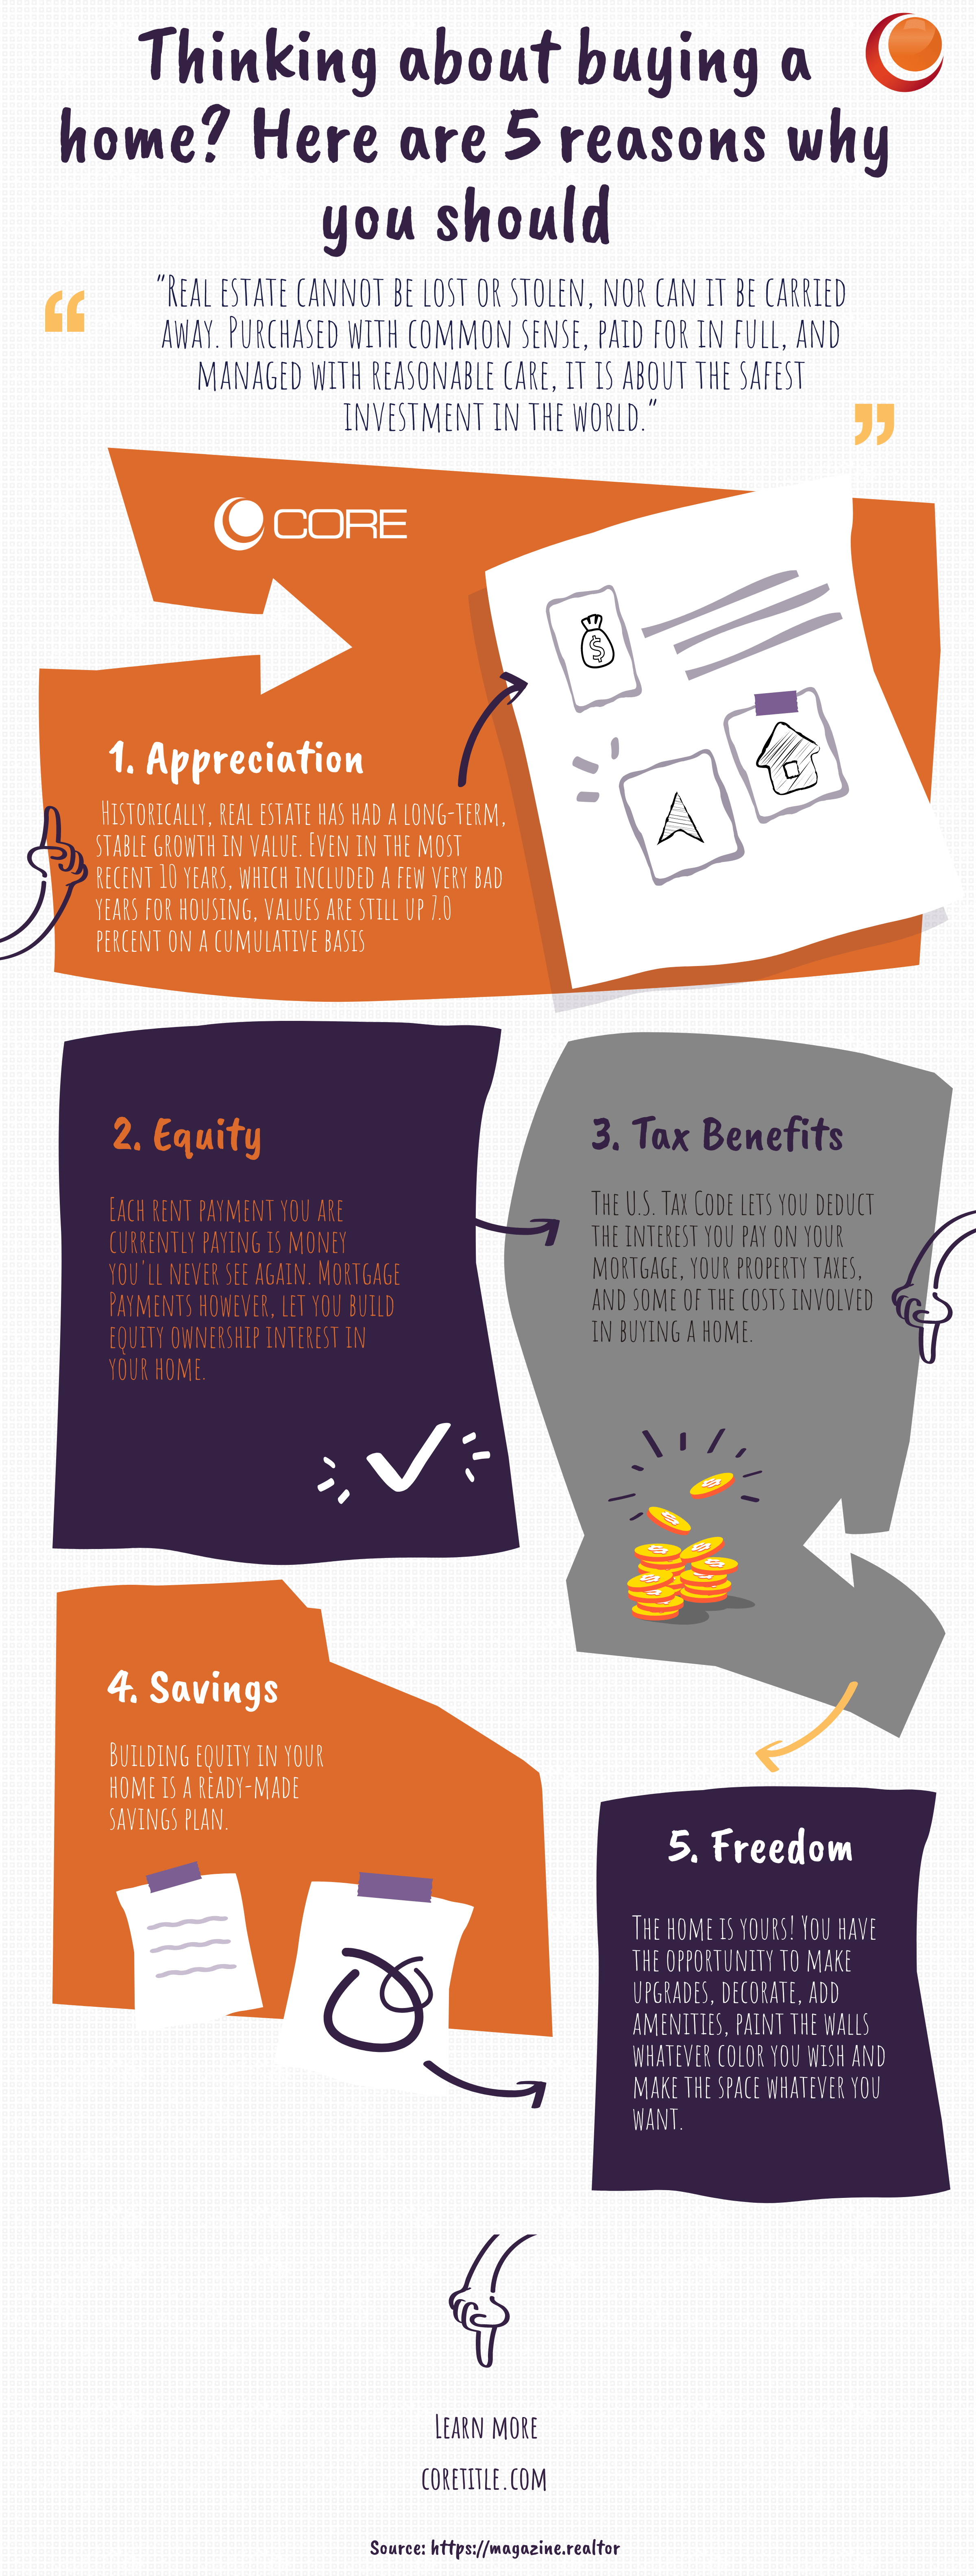 Why You Should Buy a Home